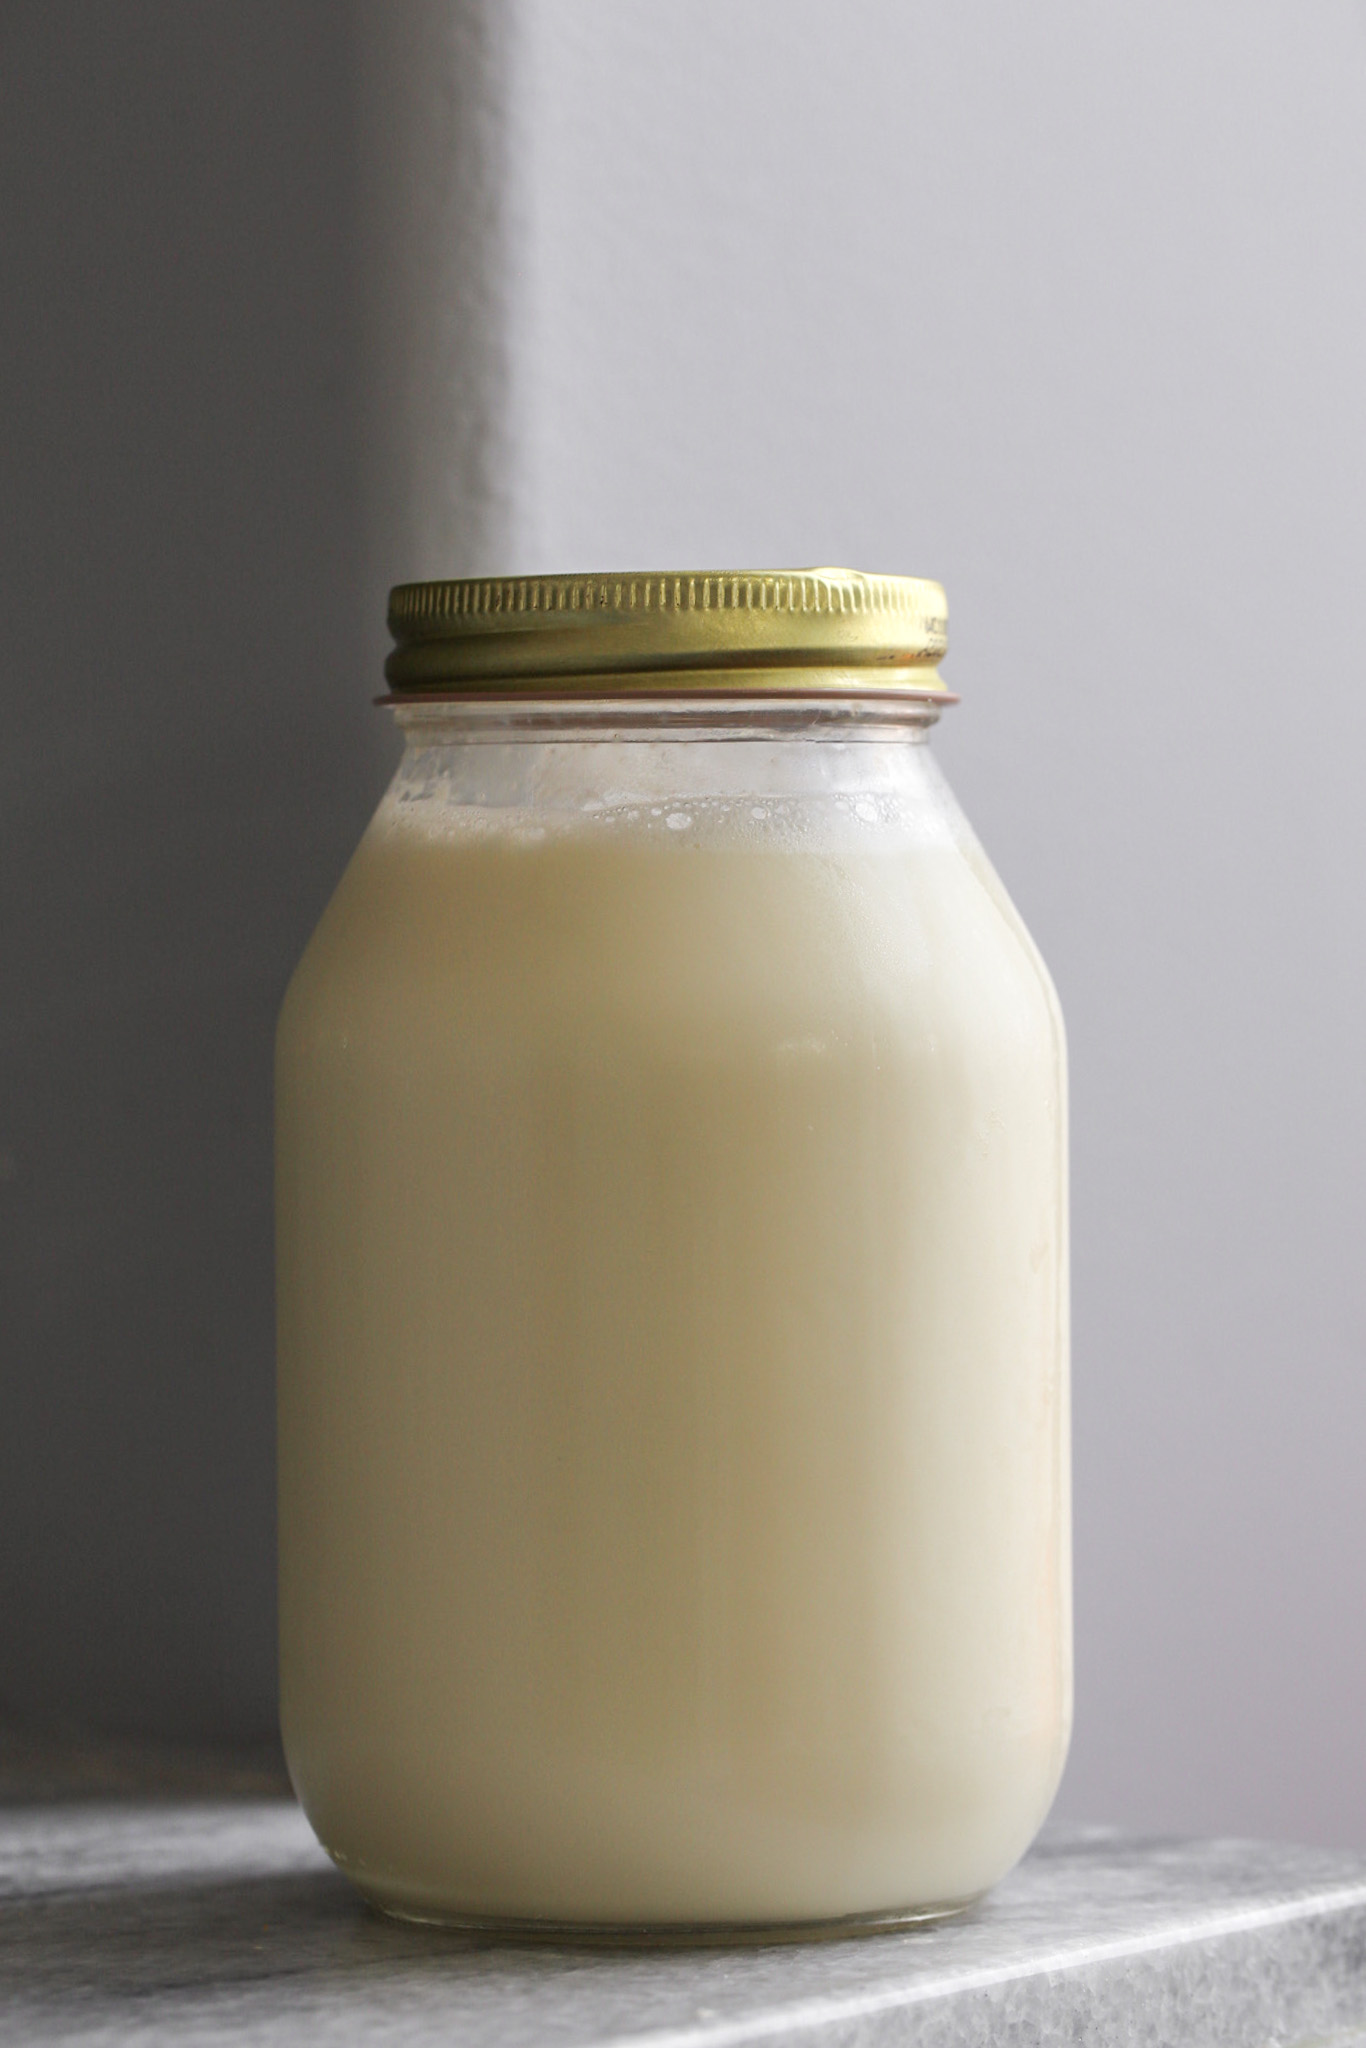 homemade soymilk in jar